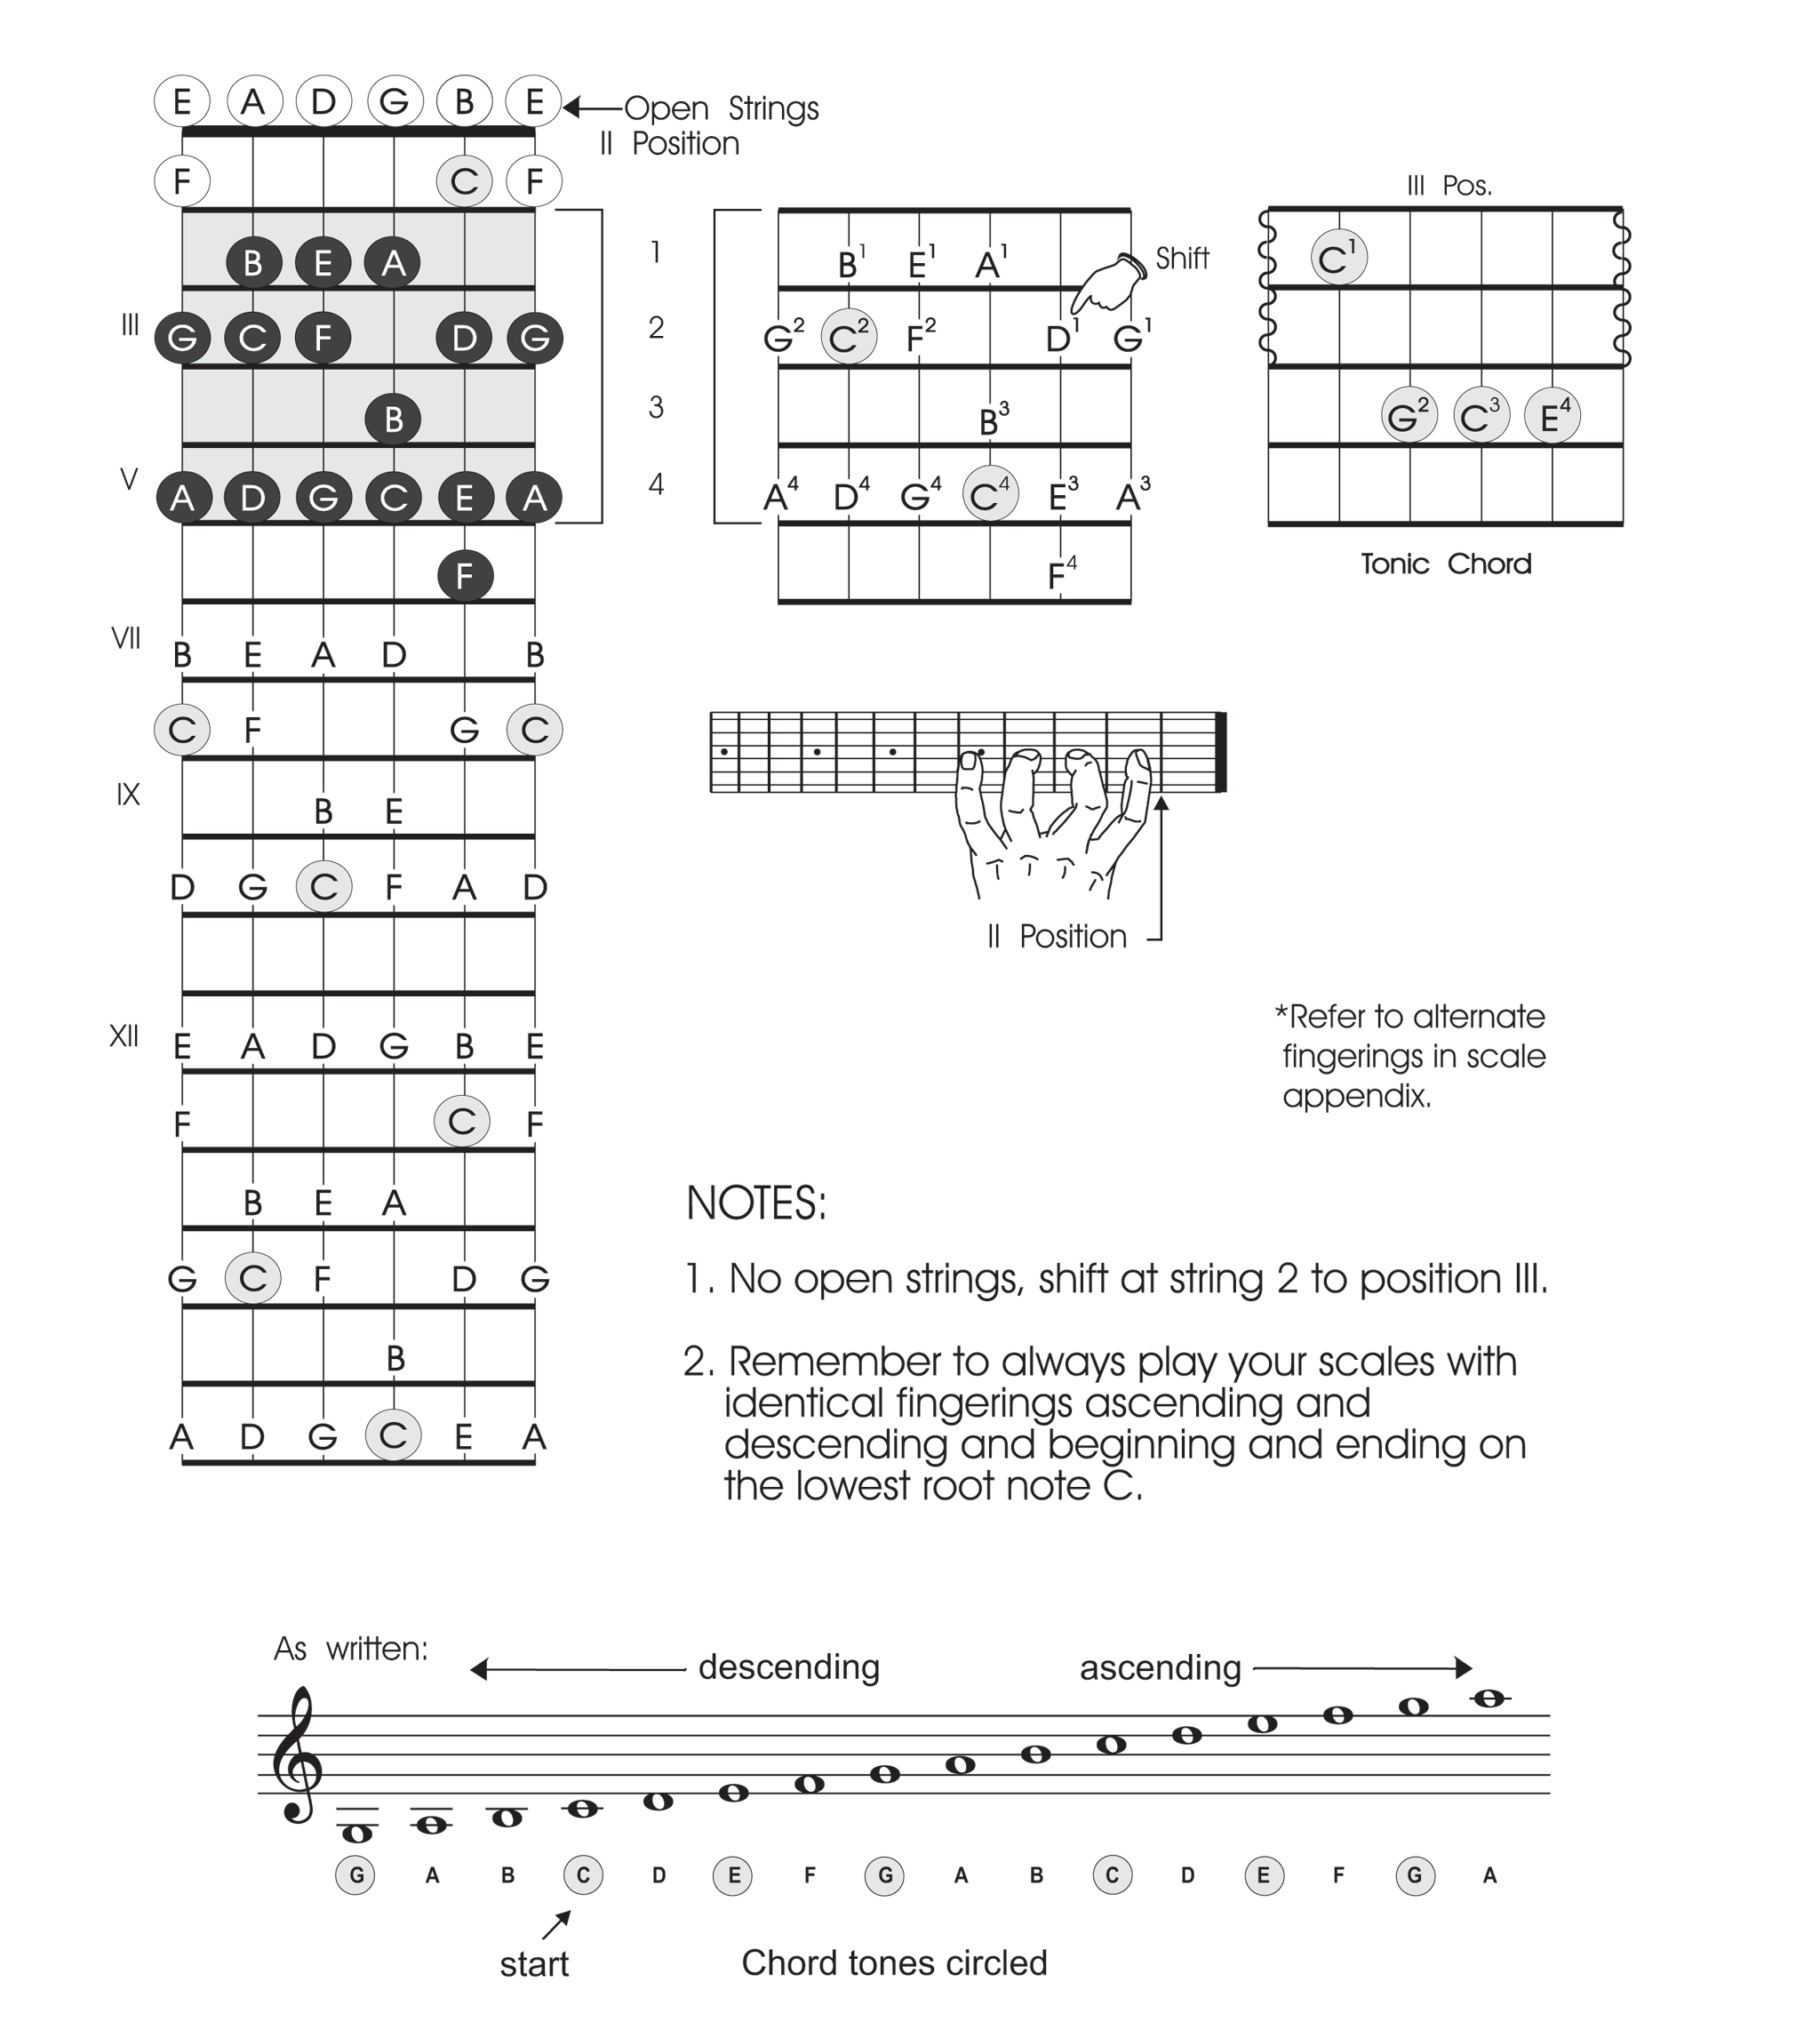 C major scale - position II two 2